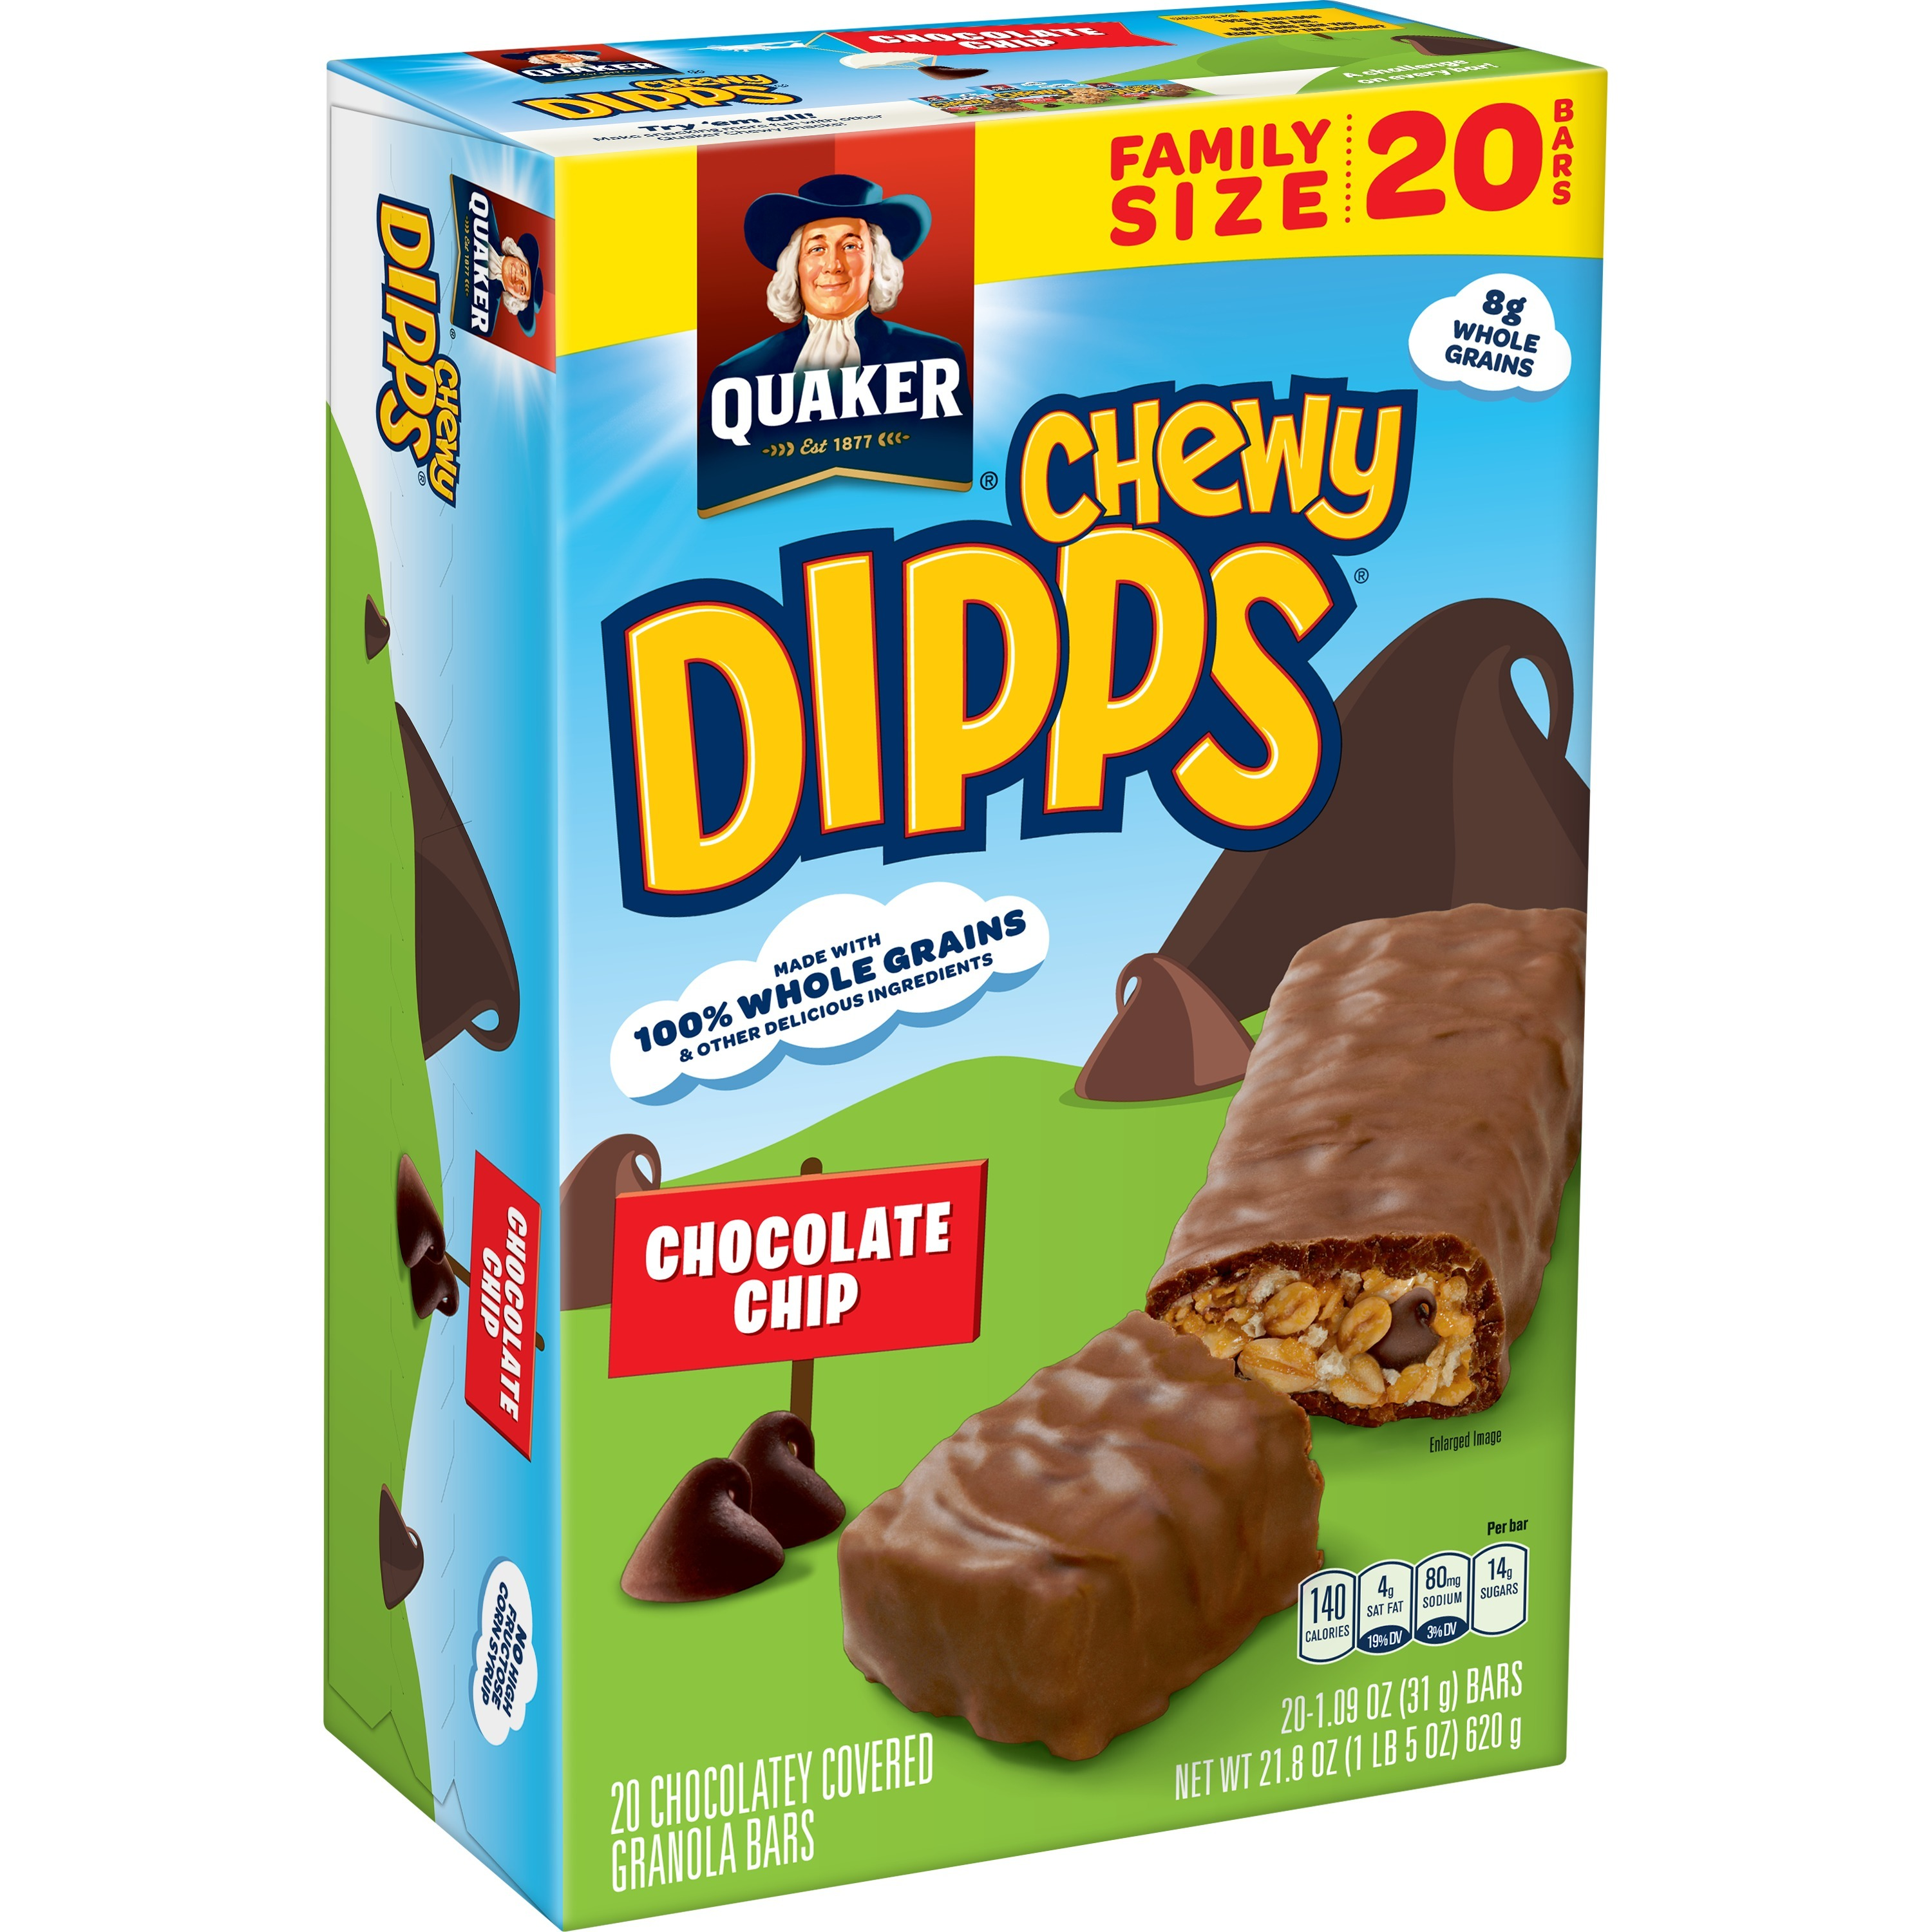 (2 Pack) Quaker Chewy Dipps Granola Bars, Chocolate Chip, 20 Count